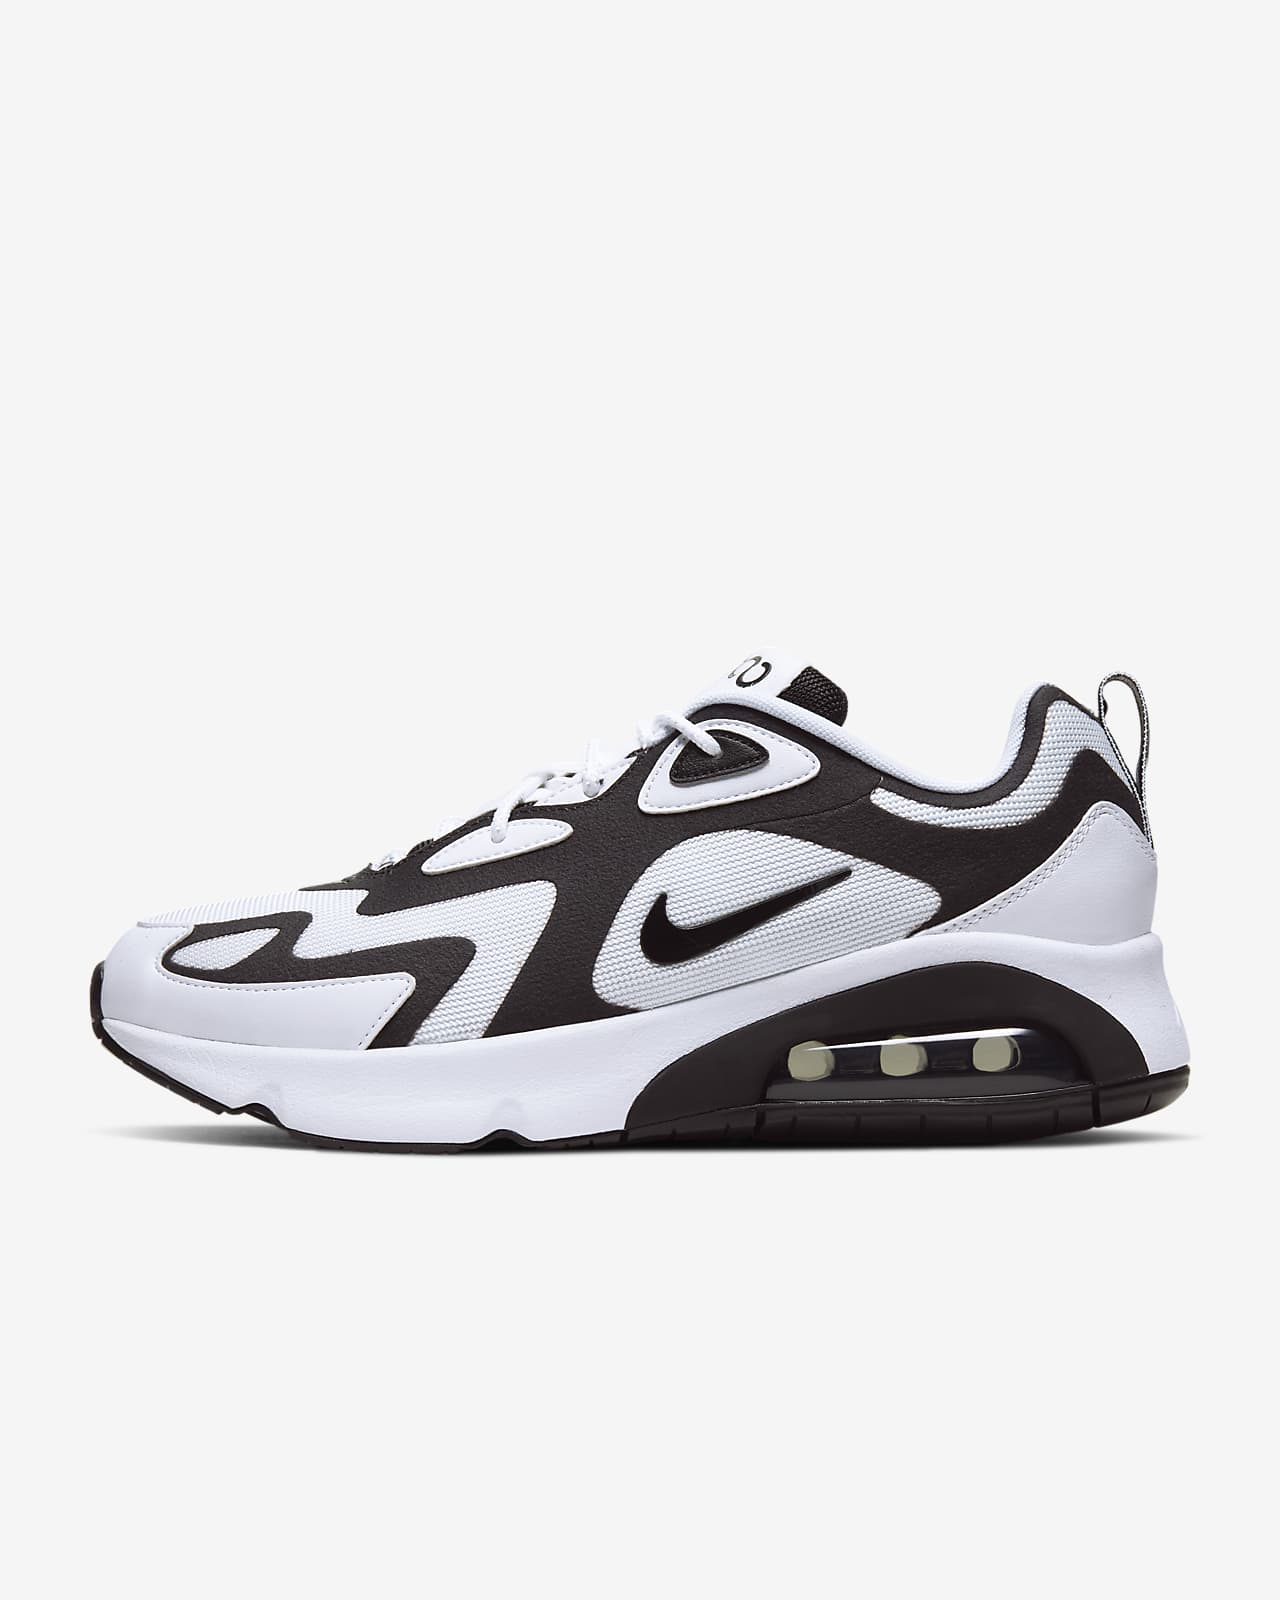 Nike Air Max 200 Mens Shoes Trainers Uk Size 9.5-10  AQ2568 104